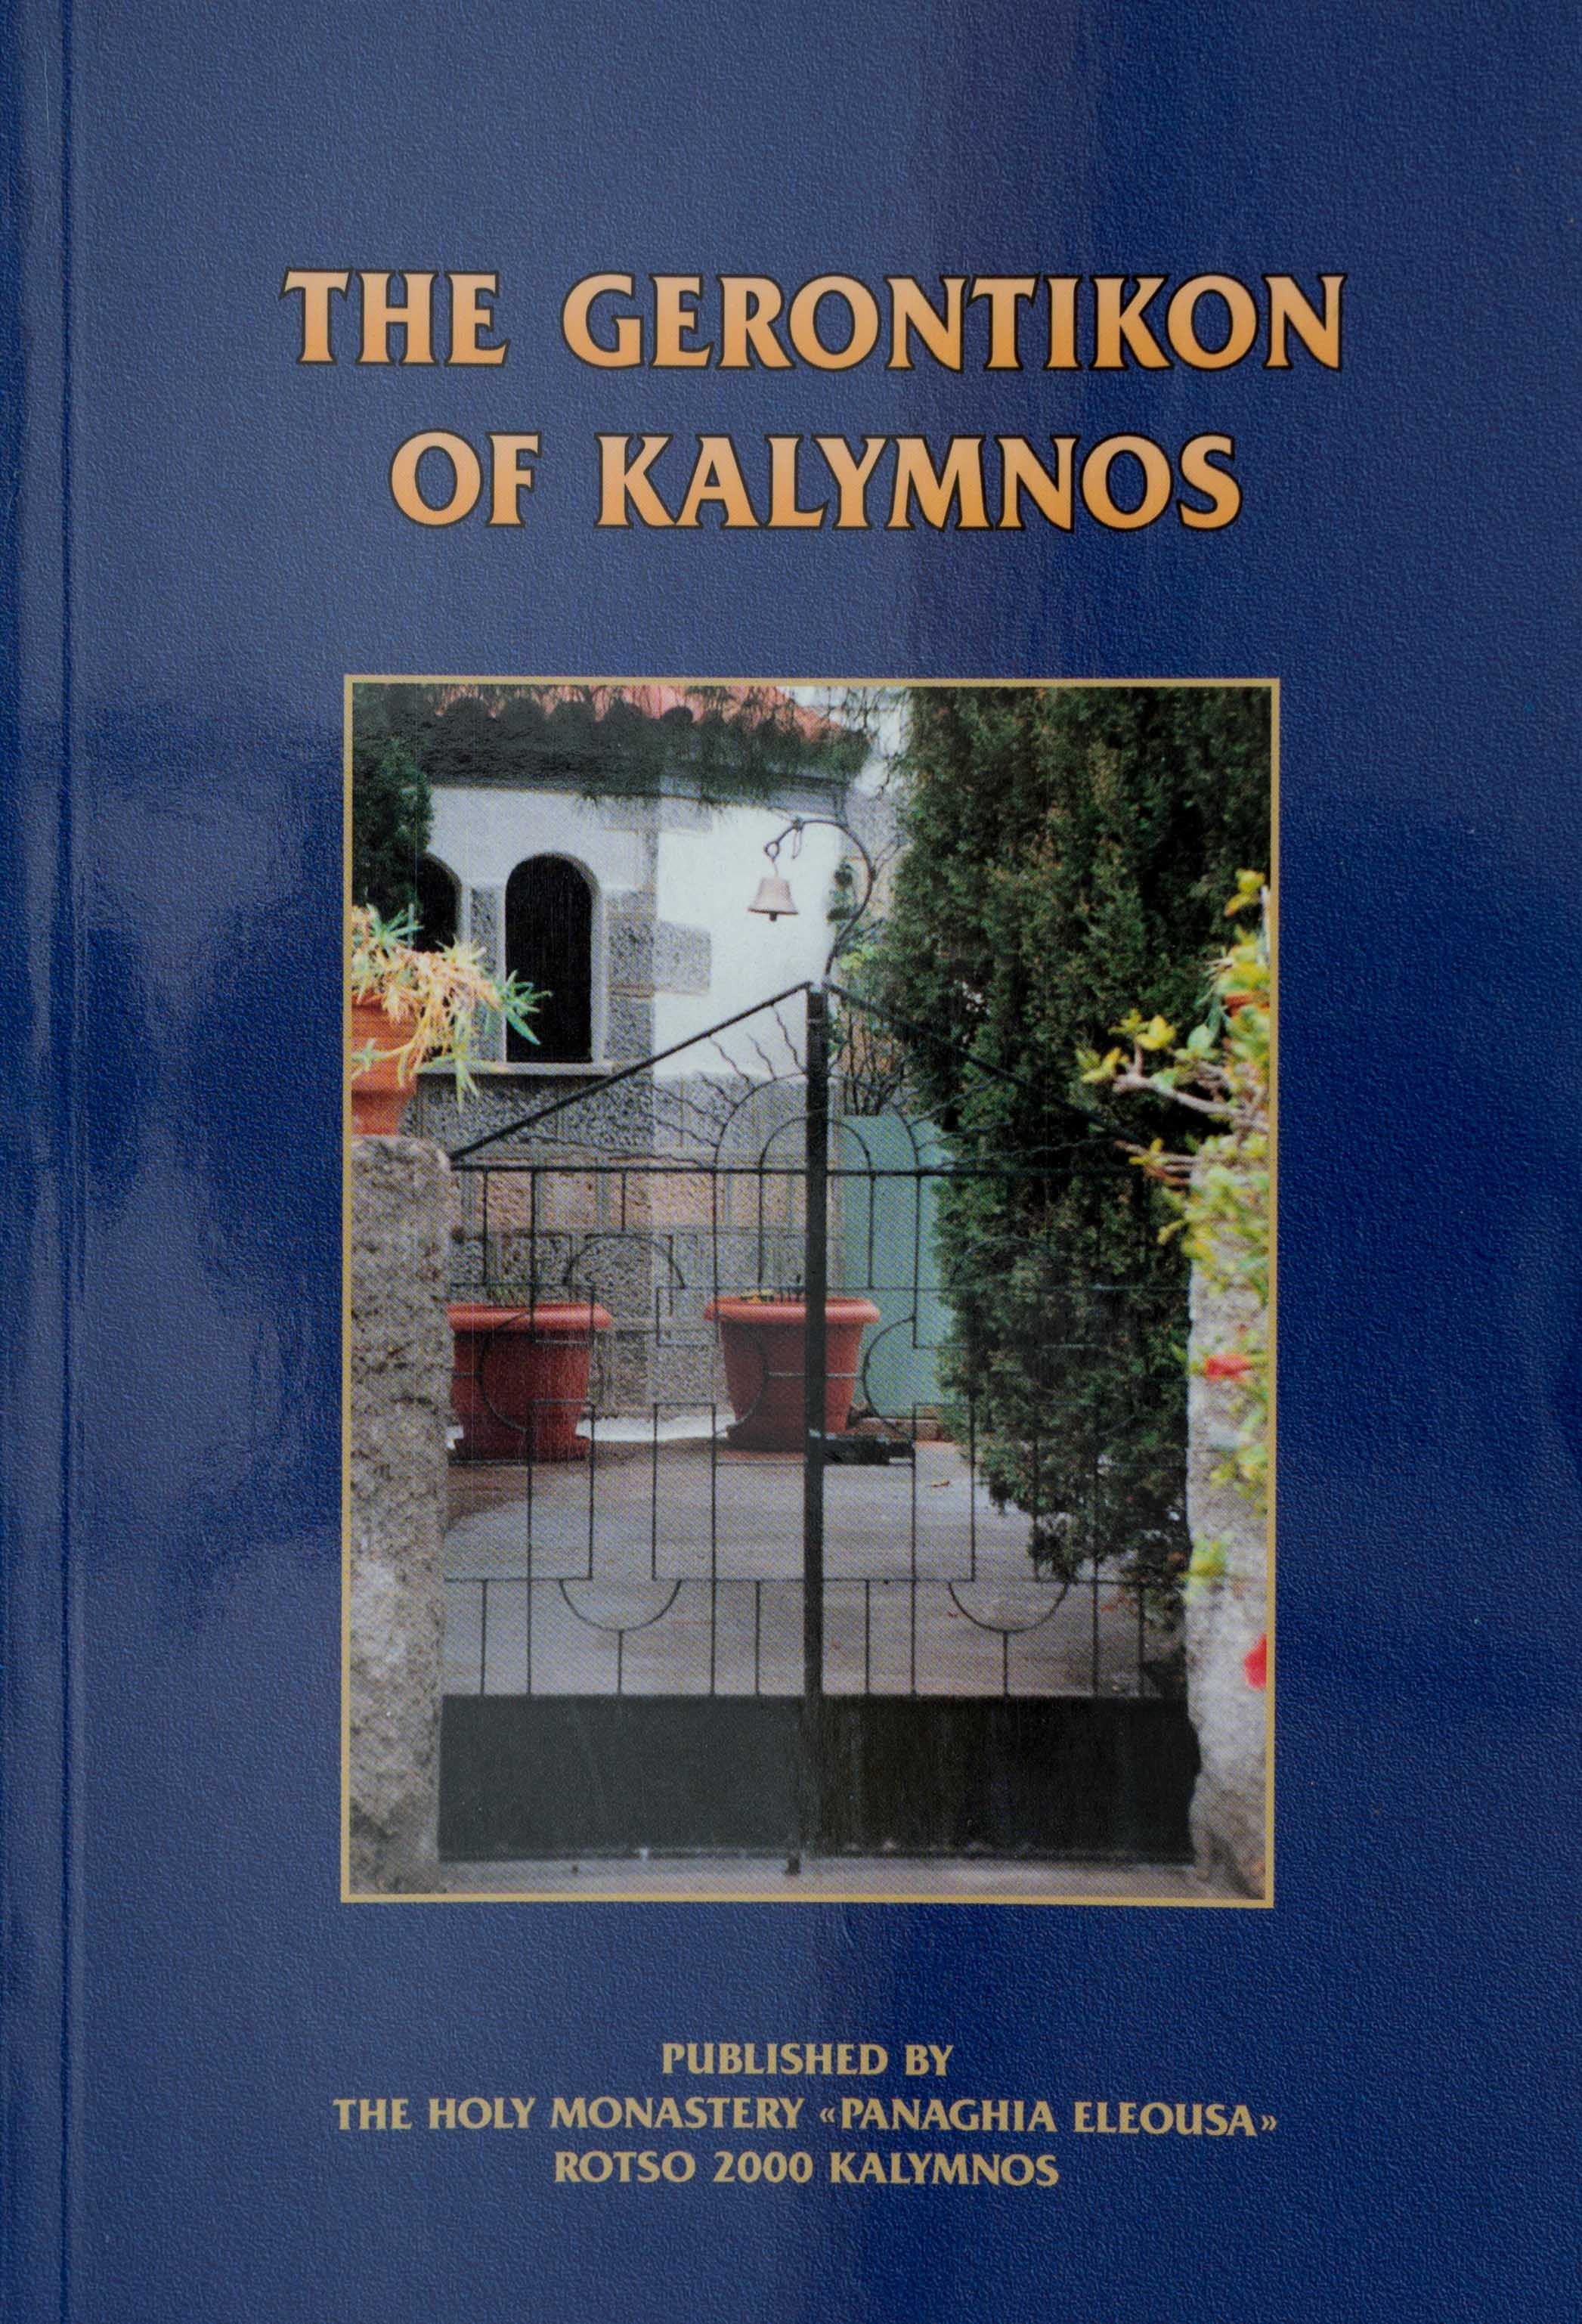 The Gerontikon of Kalymnos